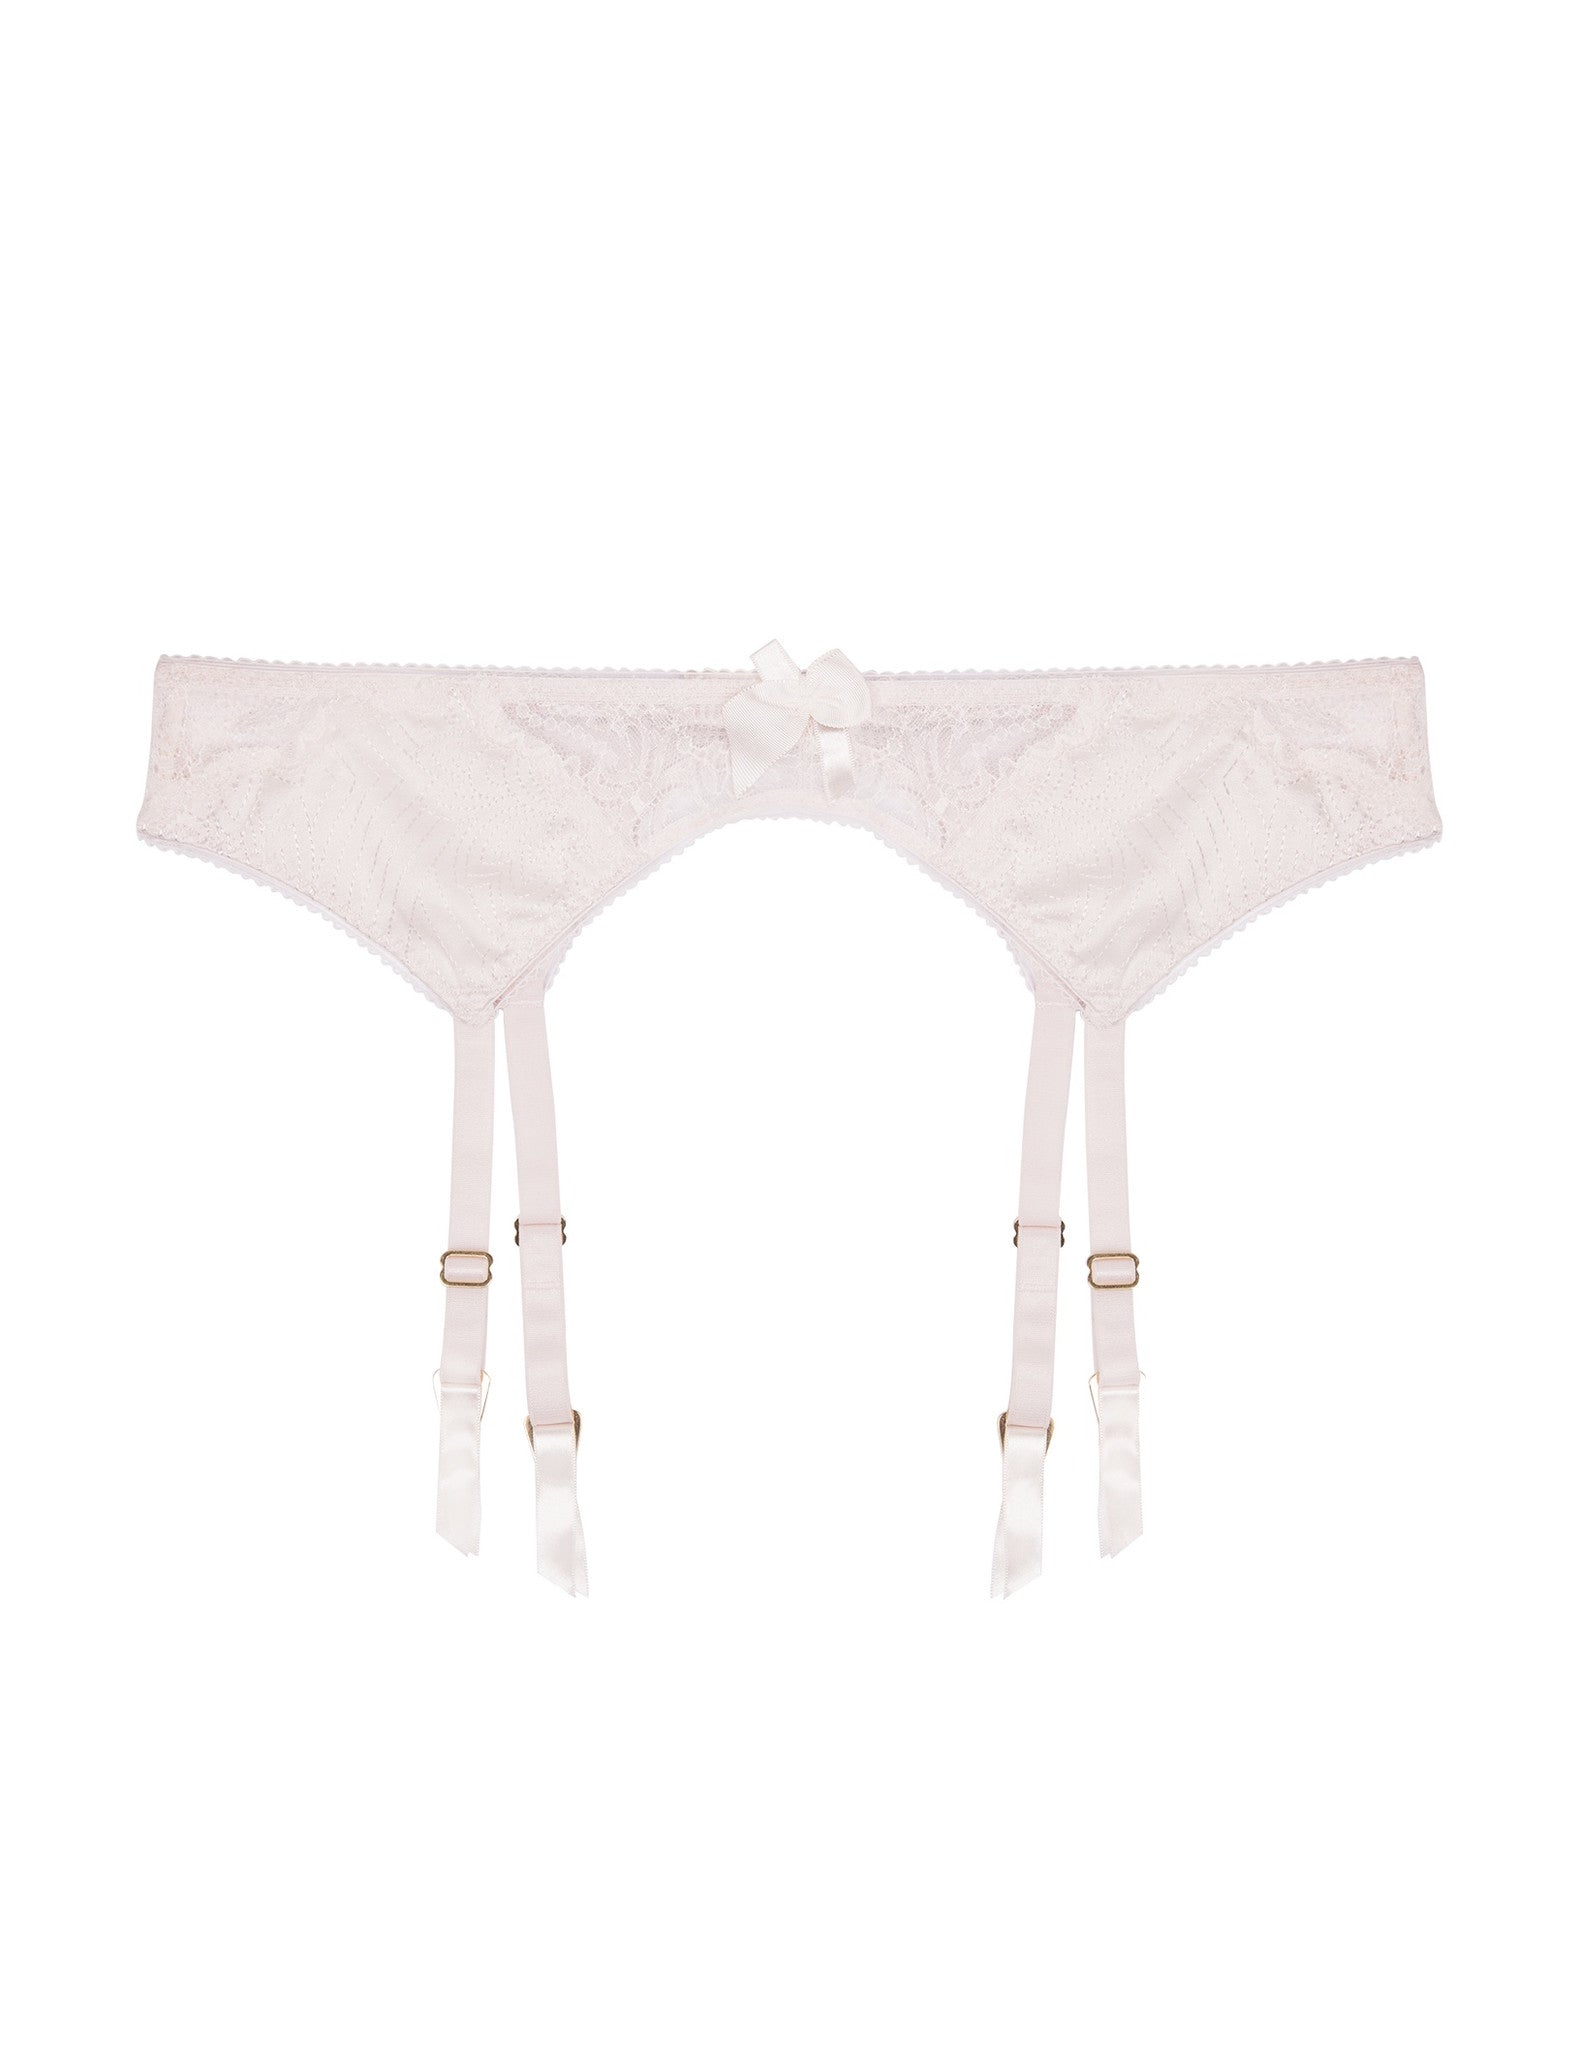 Mia Loving silk and lace suspender belt